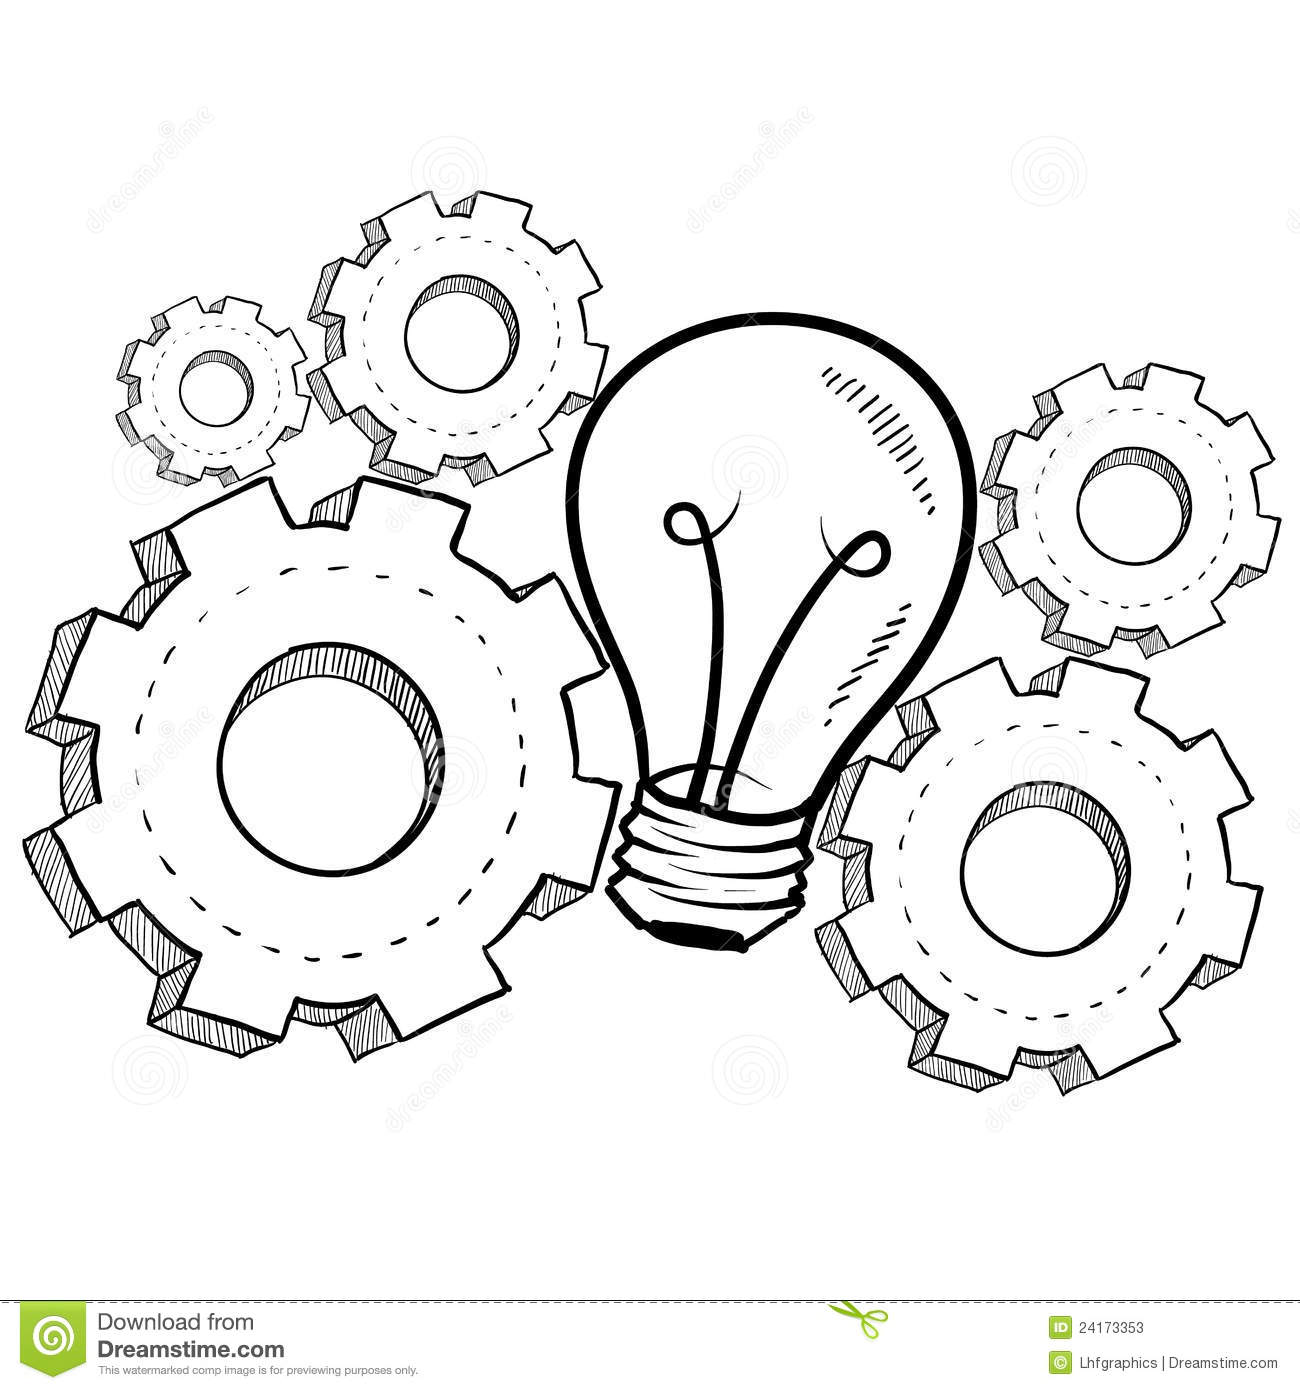 Connorrbpoppin Connor blogspot furthermore Synchronization gear likewise What Is Gear Module In Solidworks Library together with Ste unk gears clock pocket watch temp tats temporary tattoos 256061657177215769 as well Watch. on drawing of gears working